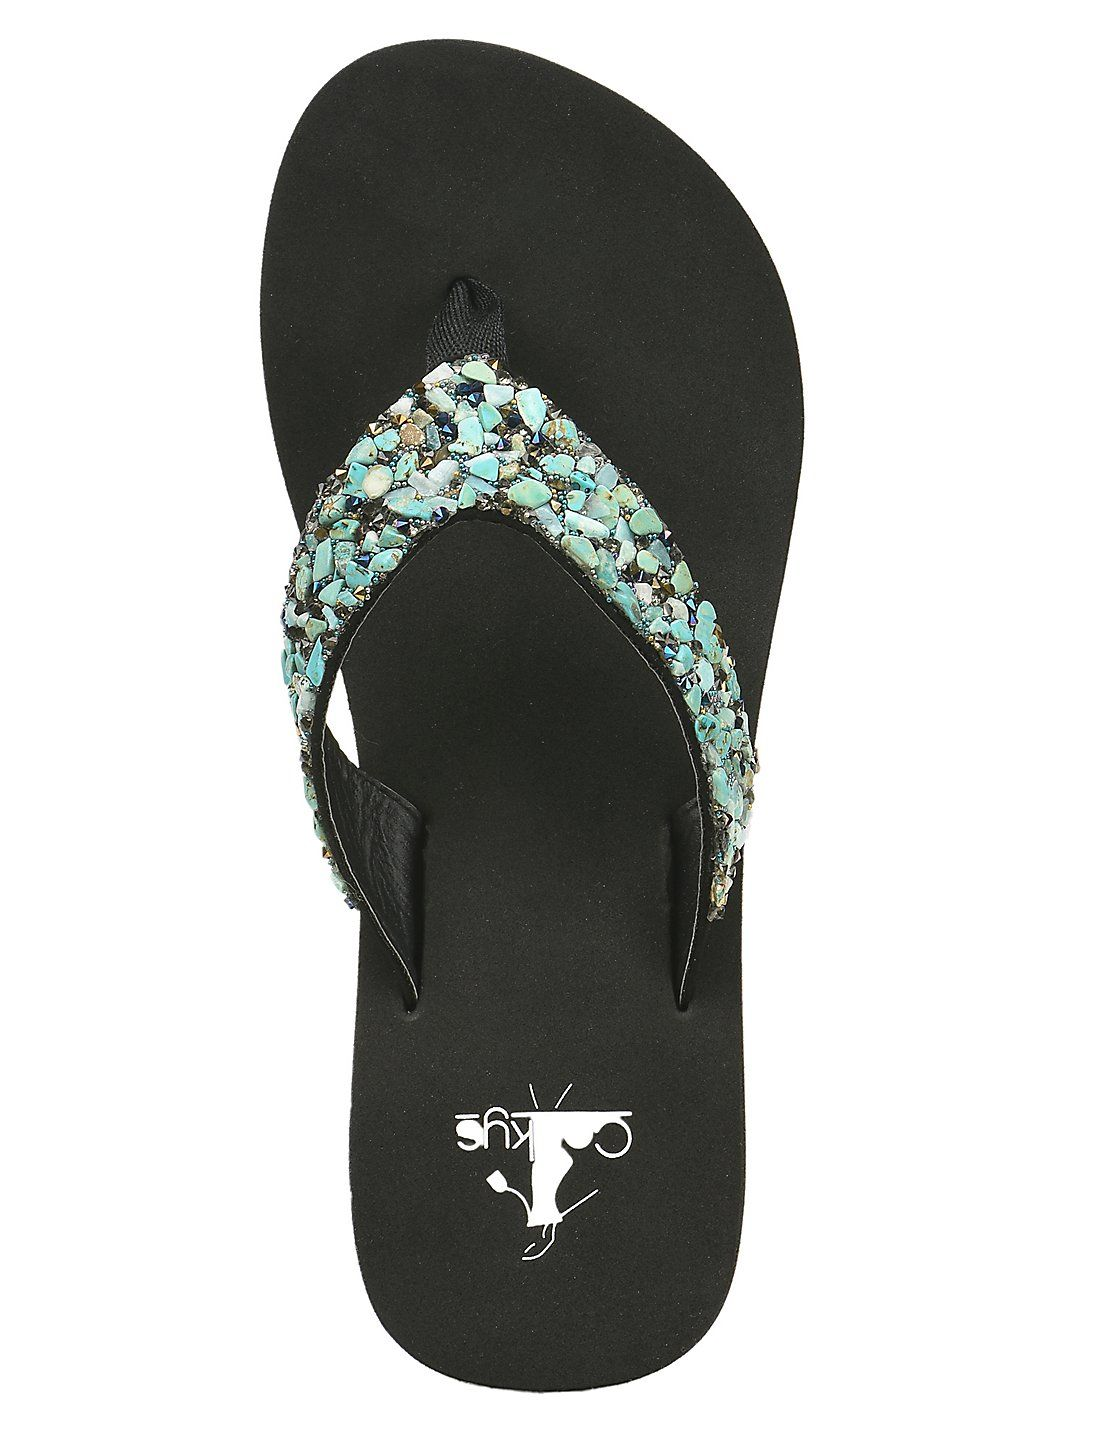 ea094b635daacd Corky s Women s Black with Turquoise Stone Embellished Straps Fashion Flip  Flops